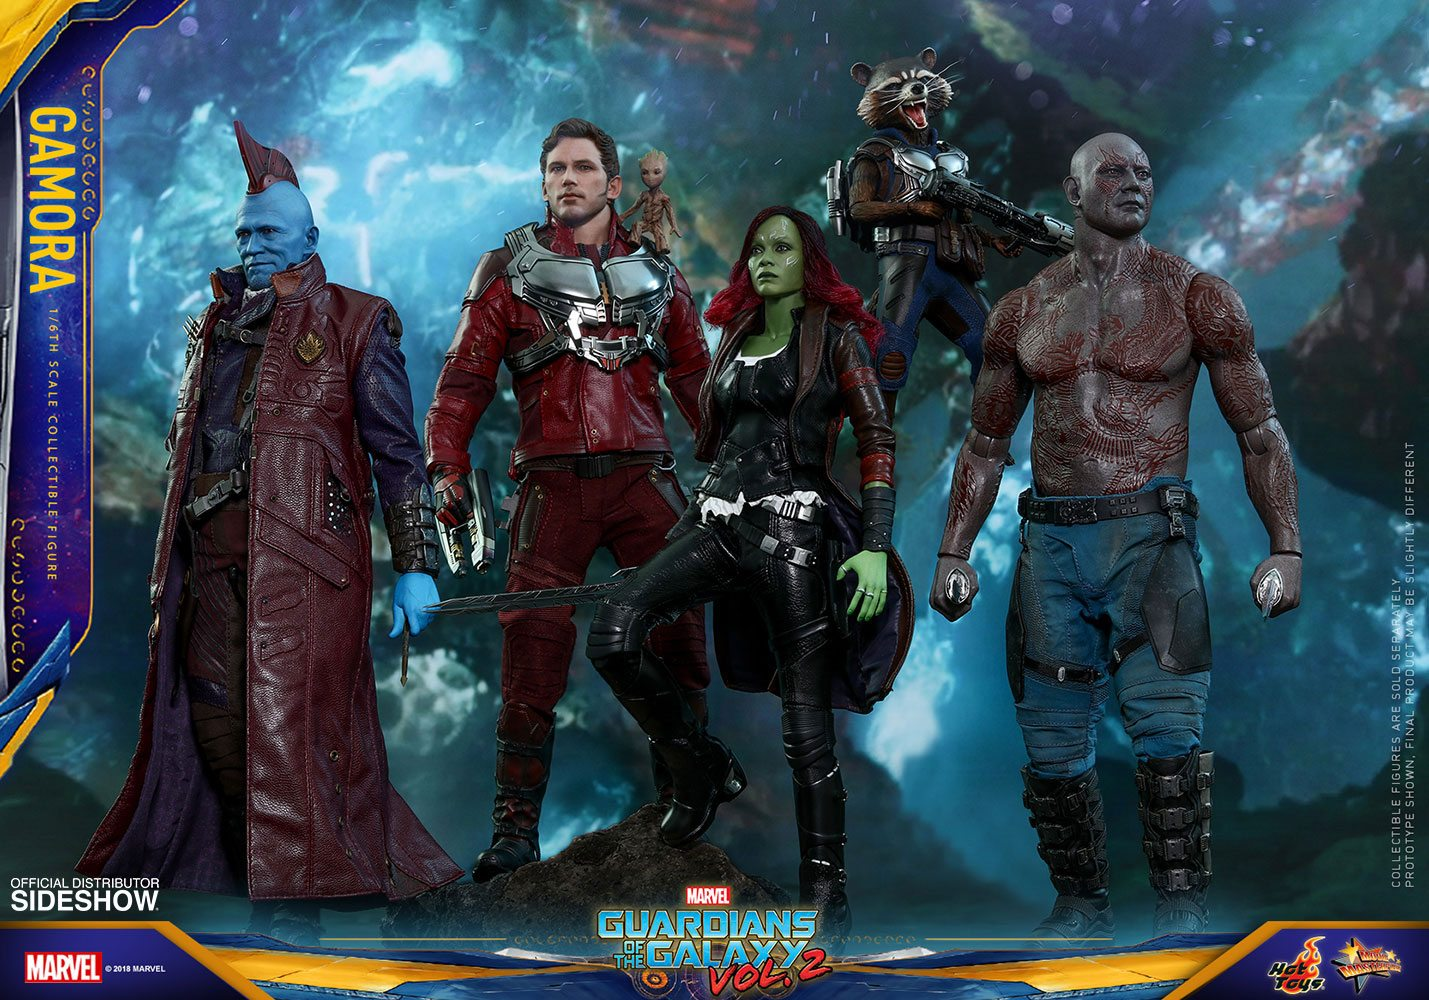 Guardians Of The Galaxy Vol 2 Movie Masterpiece Action Figure 1 6 Gamora 28 Cm Animegami Store